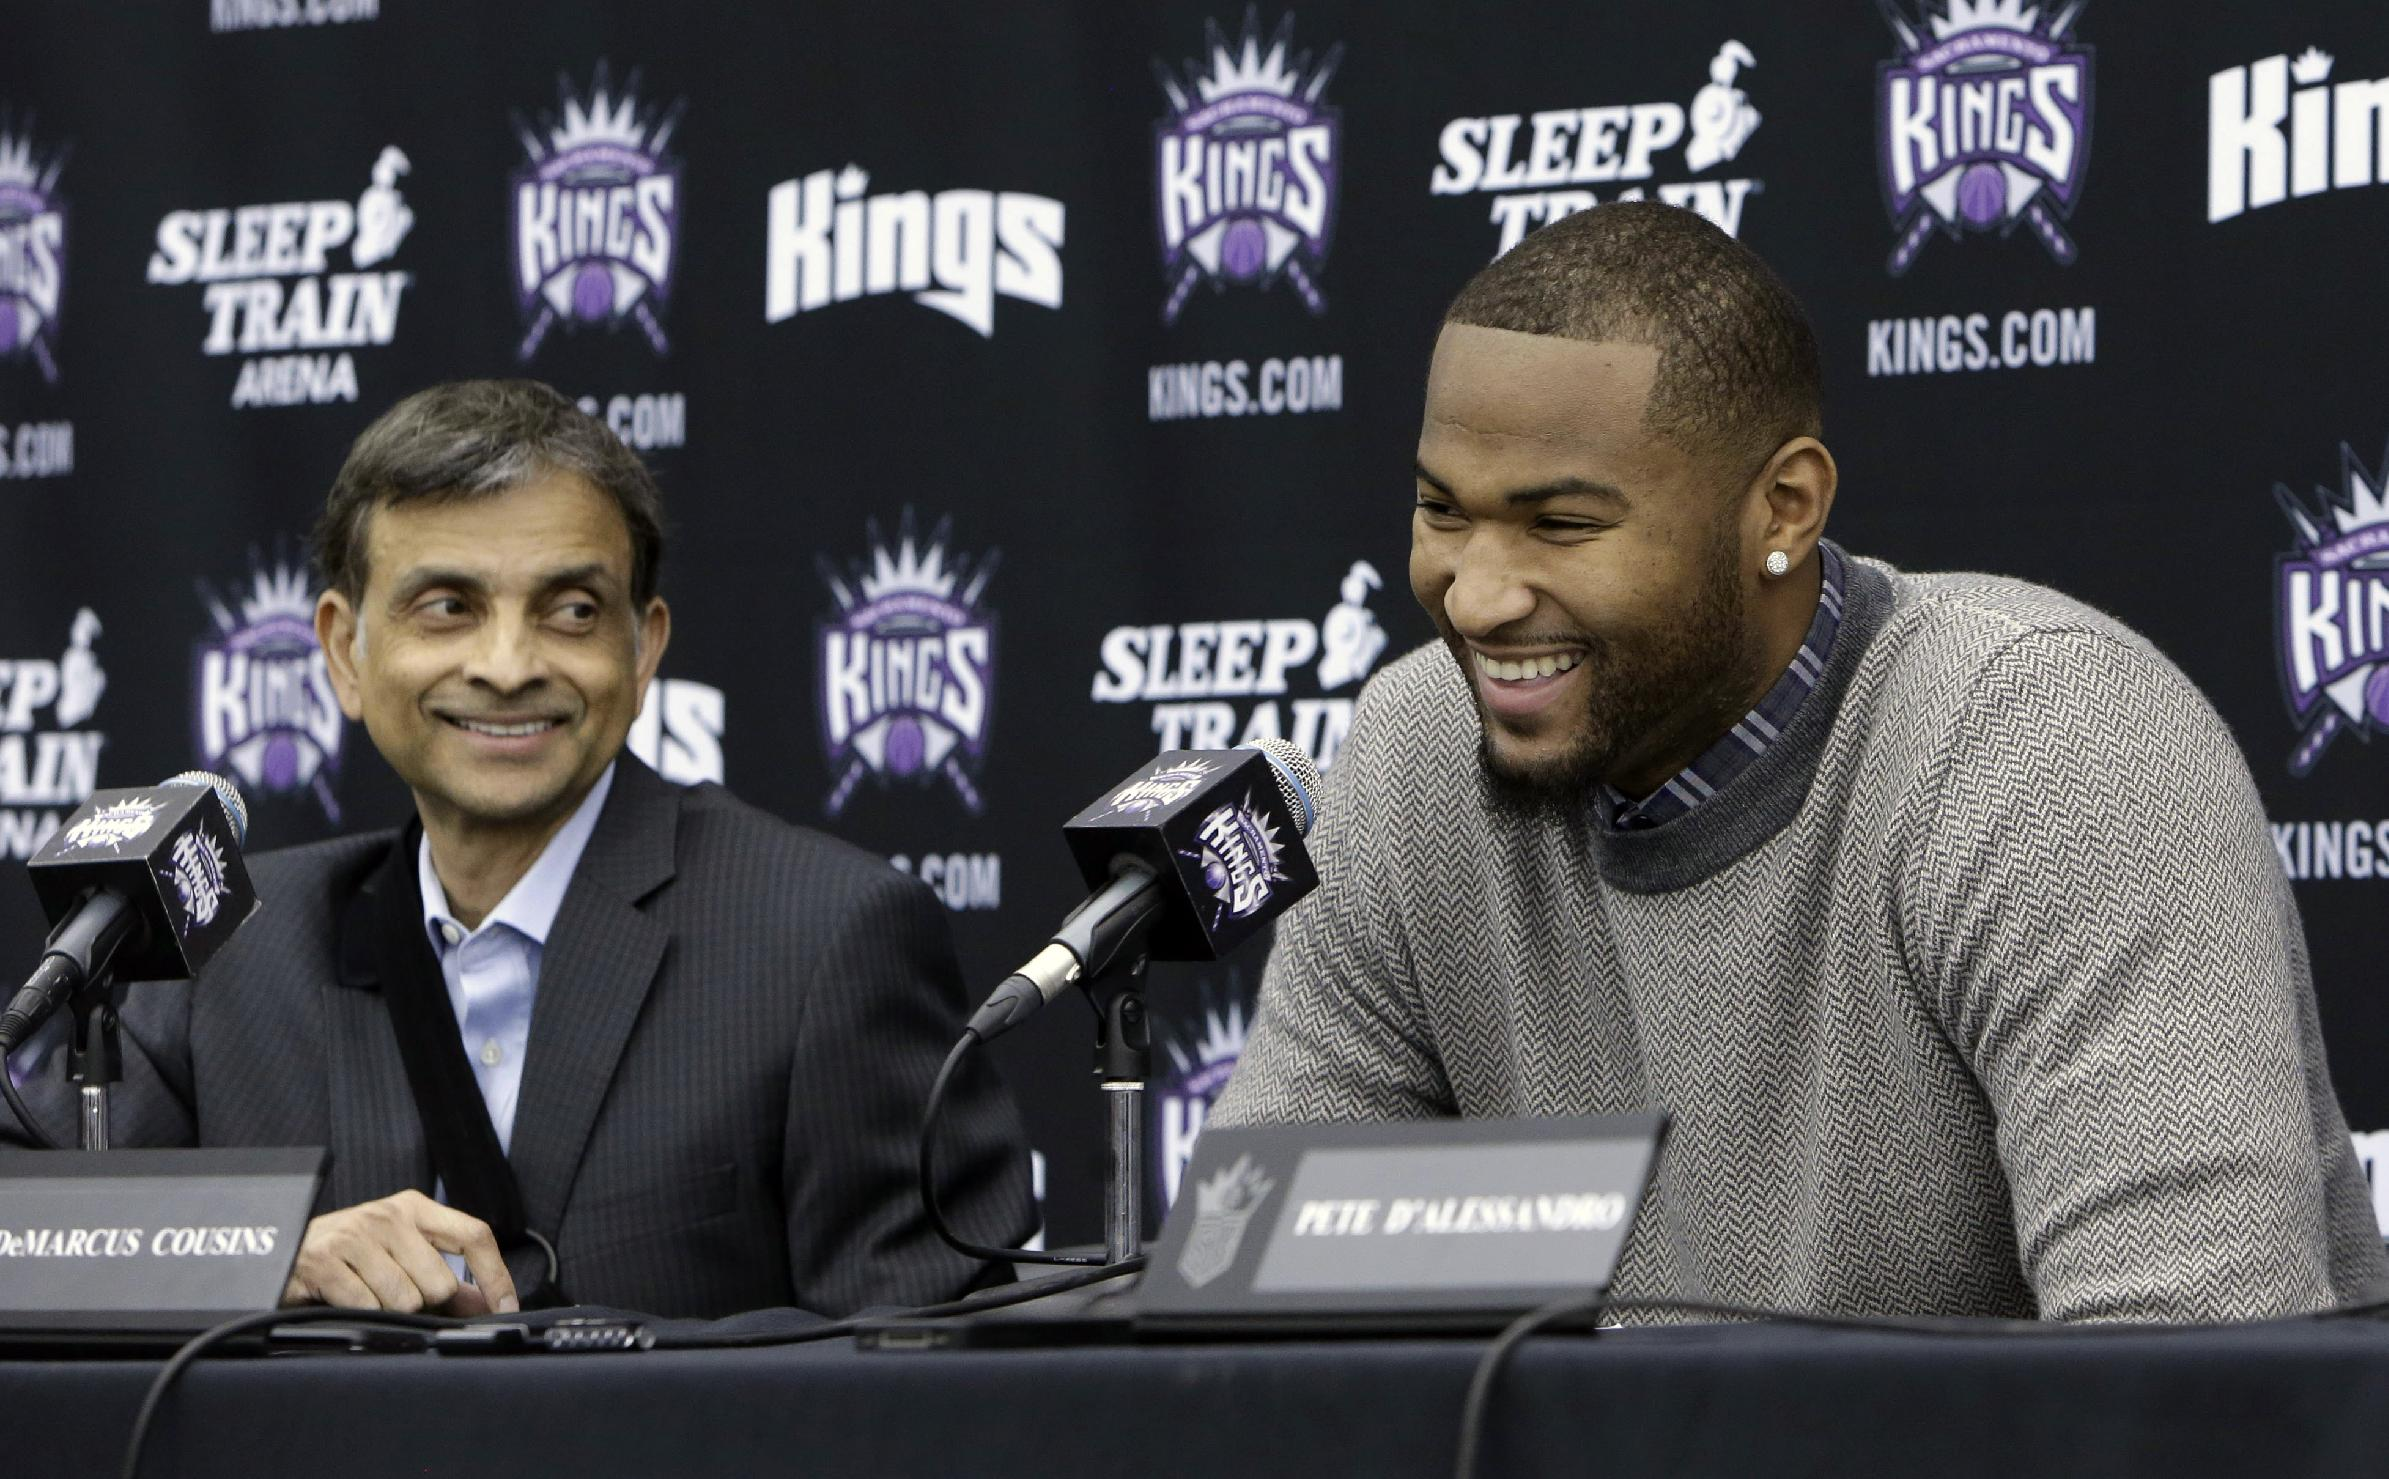 File-In this Sept. 30, 2013 file photo, Sacramento Kings majority owner Vivek Ranadive and Kings center DeMarcus Cousins laugh during a news conference to announce Cousins' signing of four-year contract extension, in Sacramento, Calif.  After purchasing the team earlier this year, Ranadive said the first call he made was to the teams talented, but temperamental center and has made Cousins the centerpiece of the Kings future